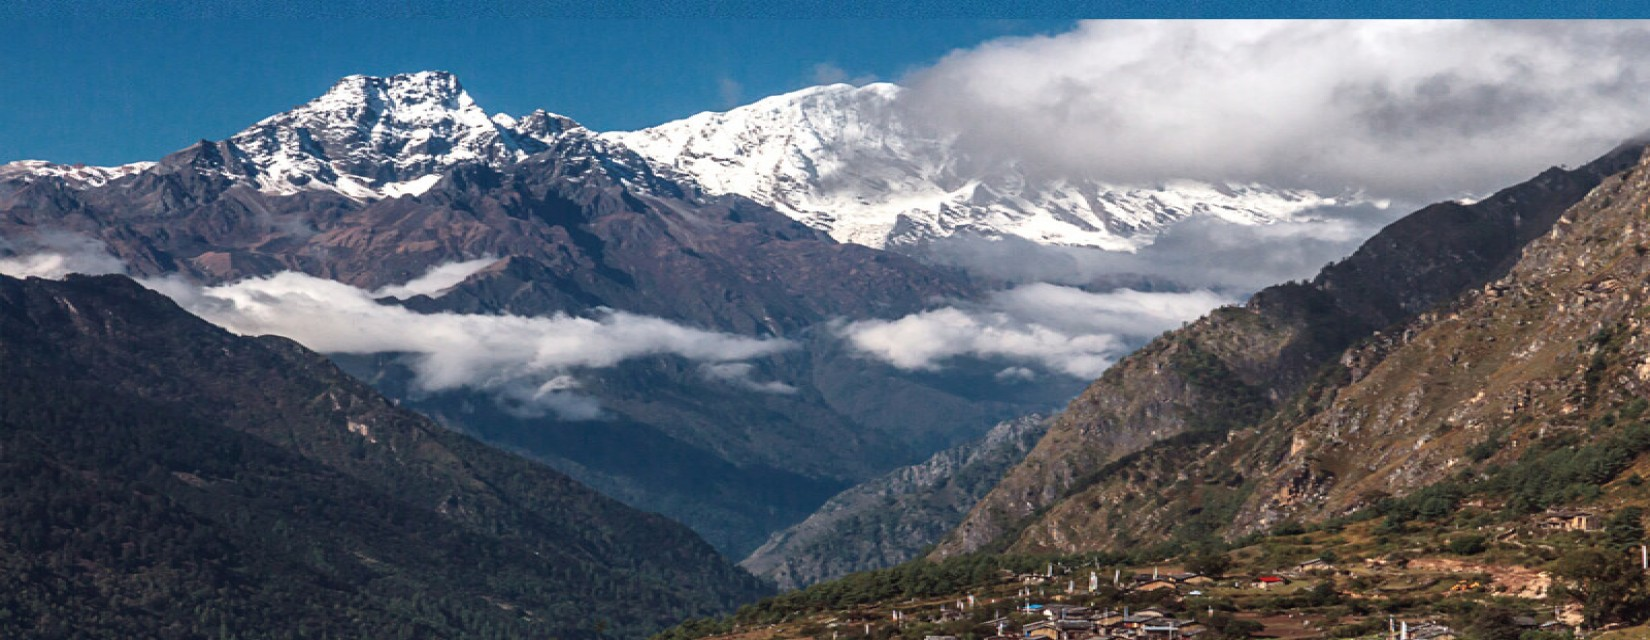 Tsum Valley -Manaslu Trekking Package